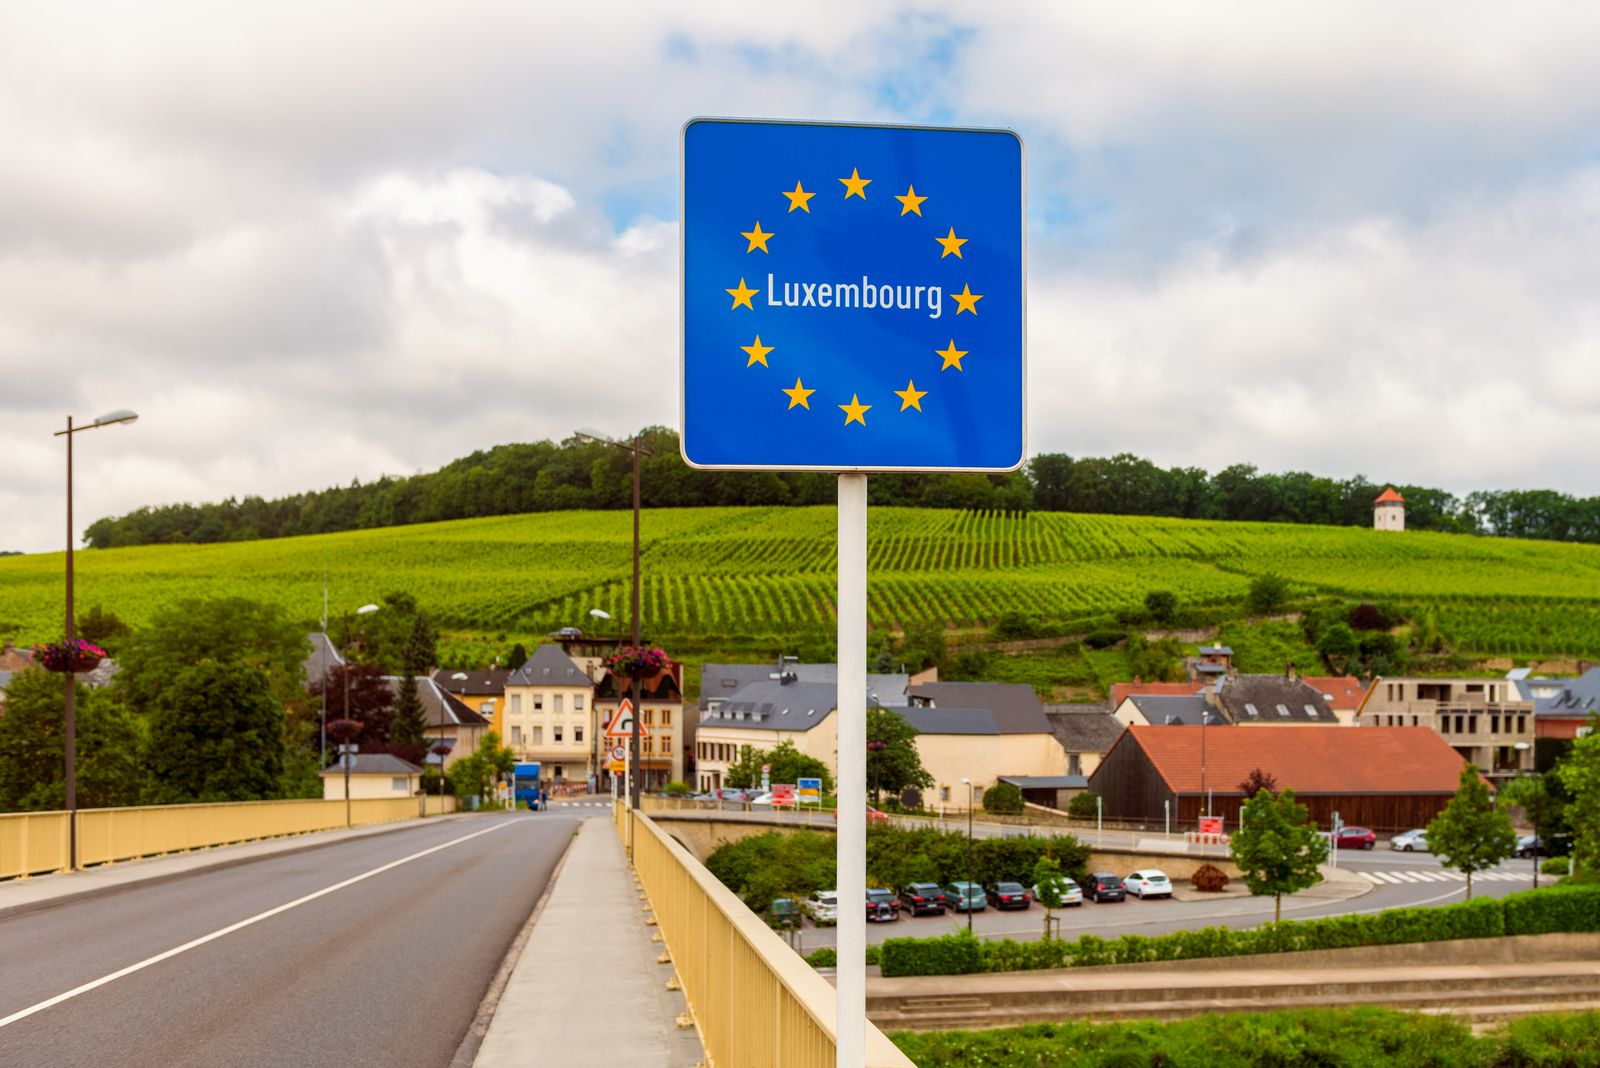 Entrance Sign to Luxembourg